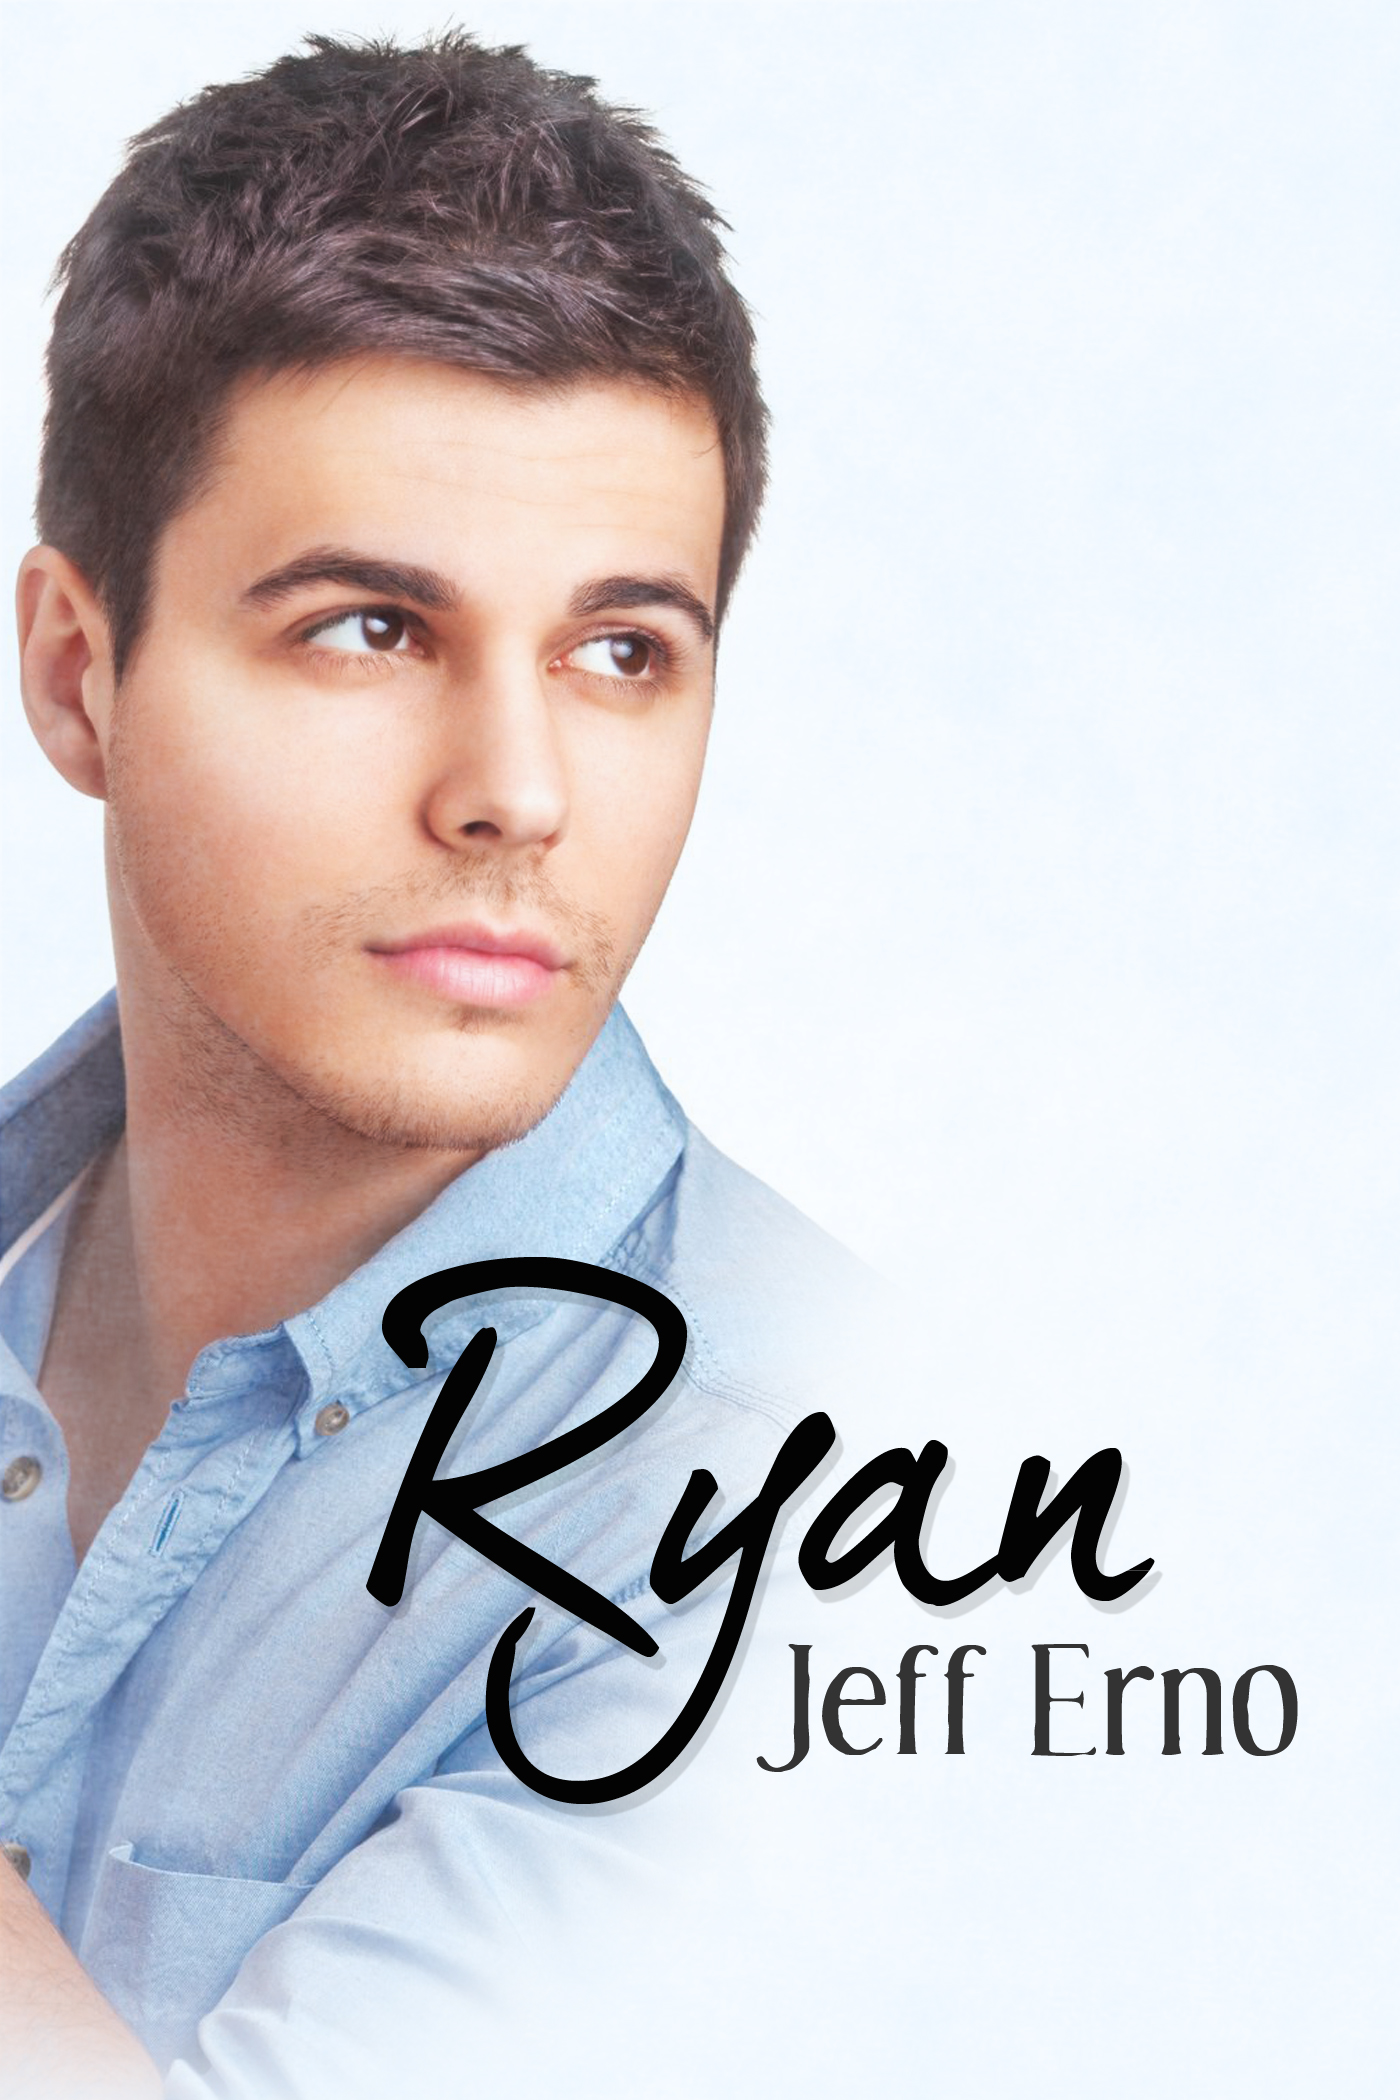 Ryan by Jeff Erno